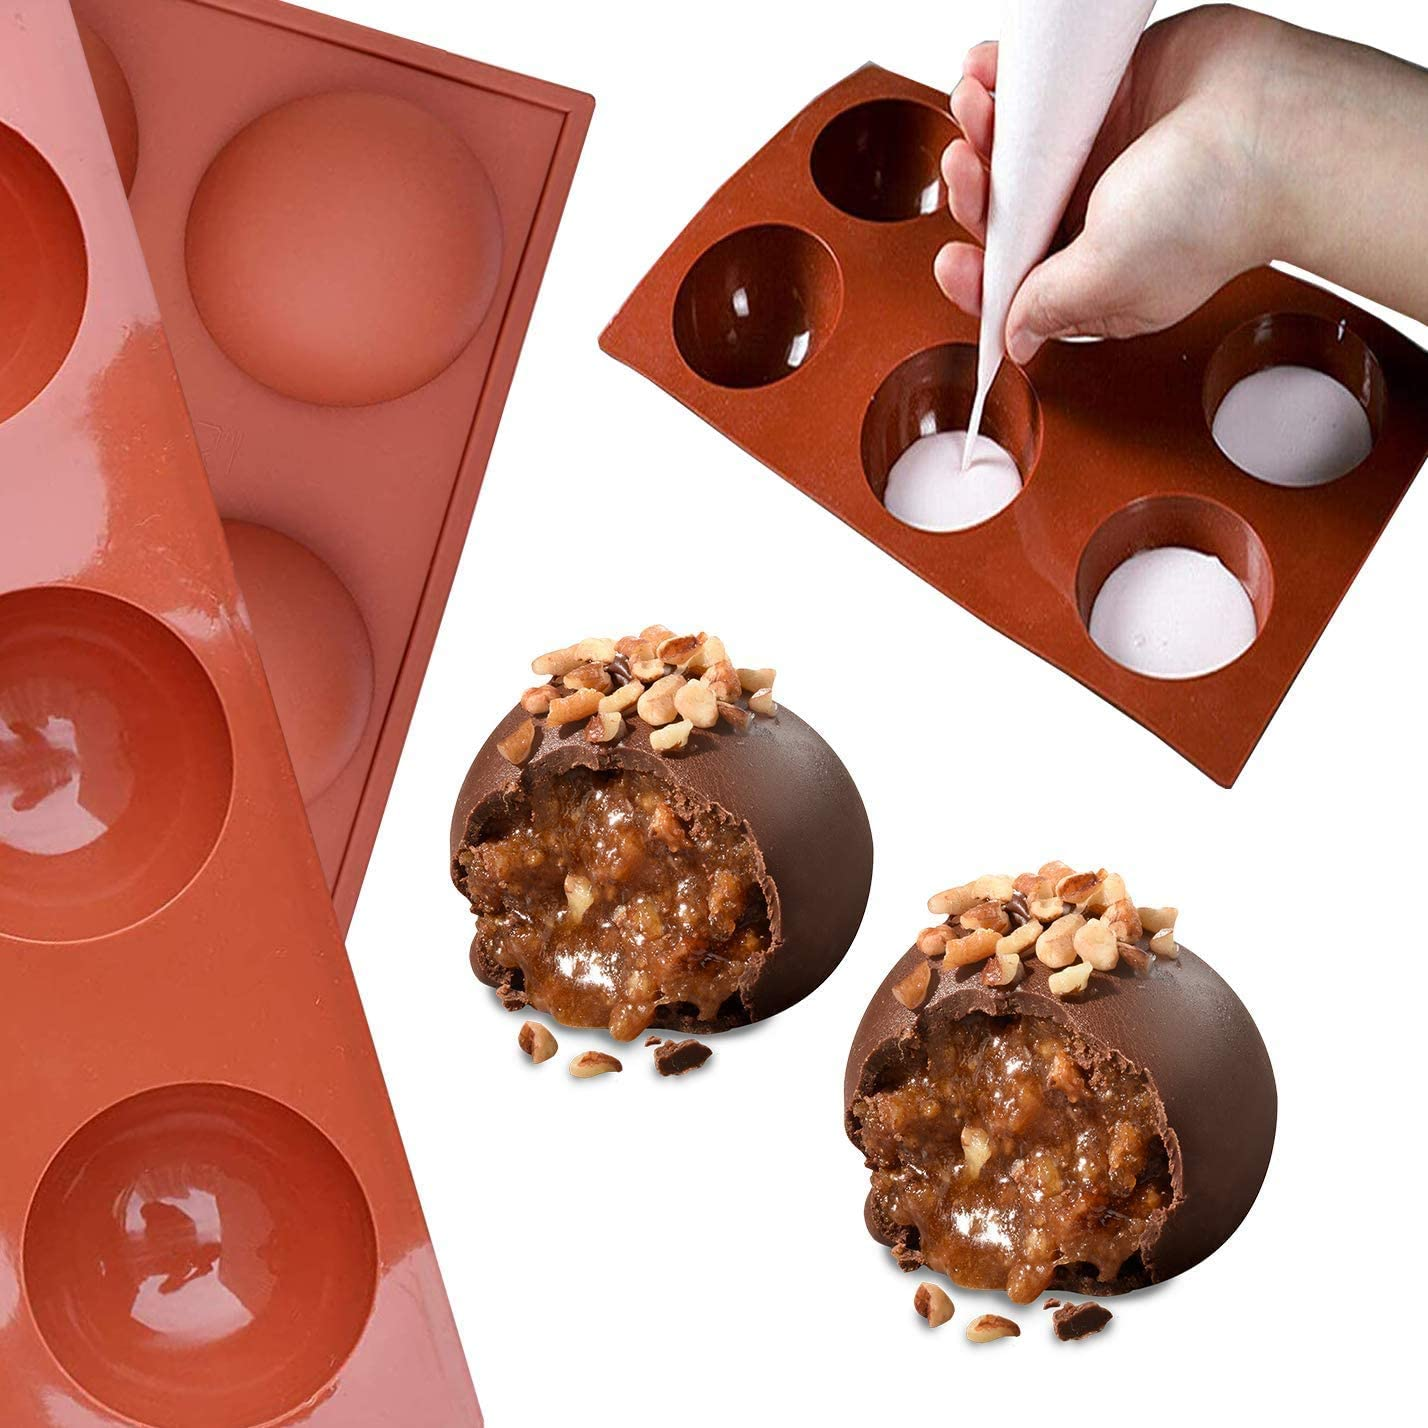 Medium Jelly Half Sphere Silicone Molds For Baking Cake 3 pcs 6 Holes Sphere Silicone Mold For Chocolate BPA Free Cupcake Baking Dome Mousse Silicone Molds for Making Chocolate